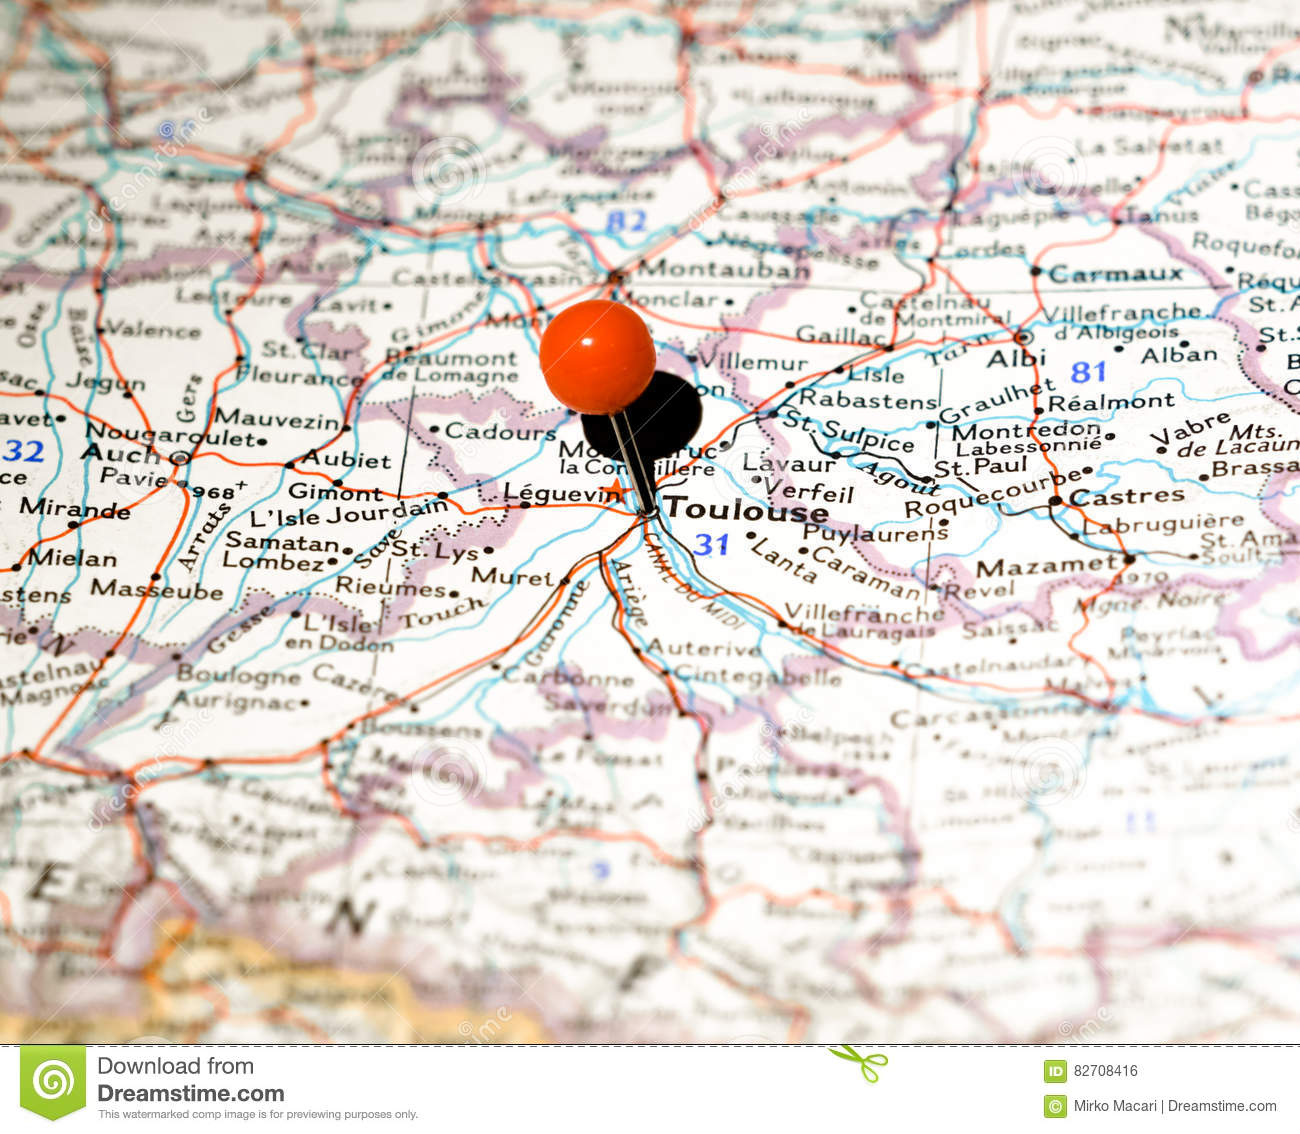 Map Of France Toulouse.Toulouse Location Pinned On The Route Map Stock Photo Image Of